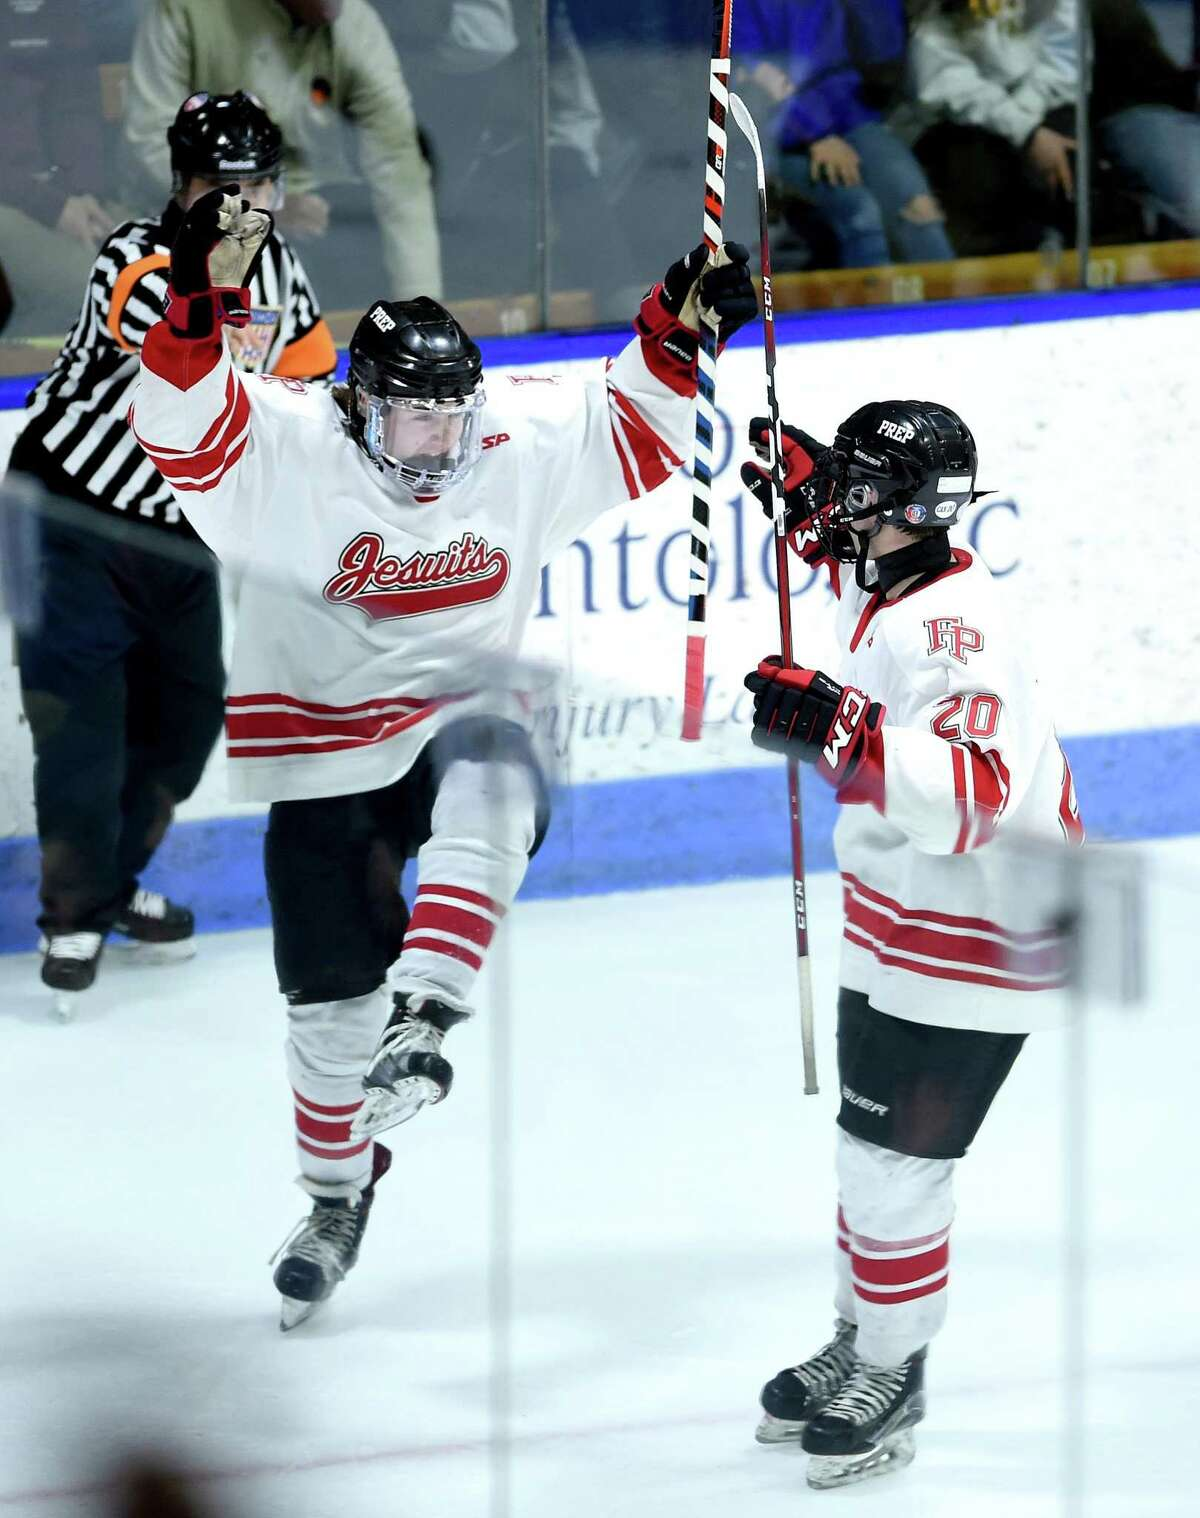 Fairfield Prep's Lucas Baksay, left, celebrates with Anthony Clericuzio after scoring against Notre Dame-West Haven in the first period of the the CIAC Division I championship game on Tuesday in New Haven.